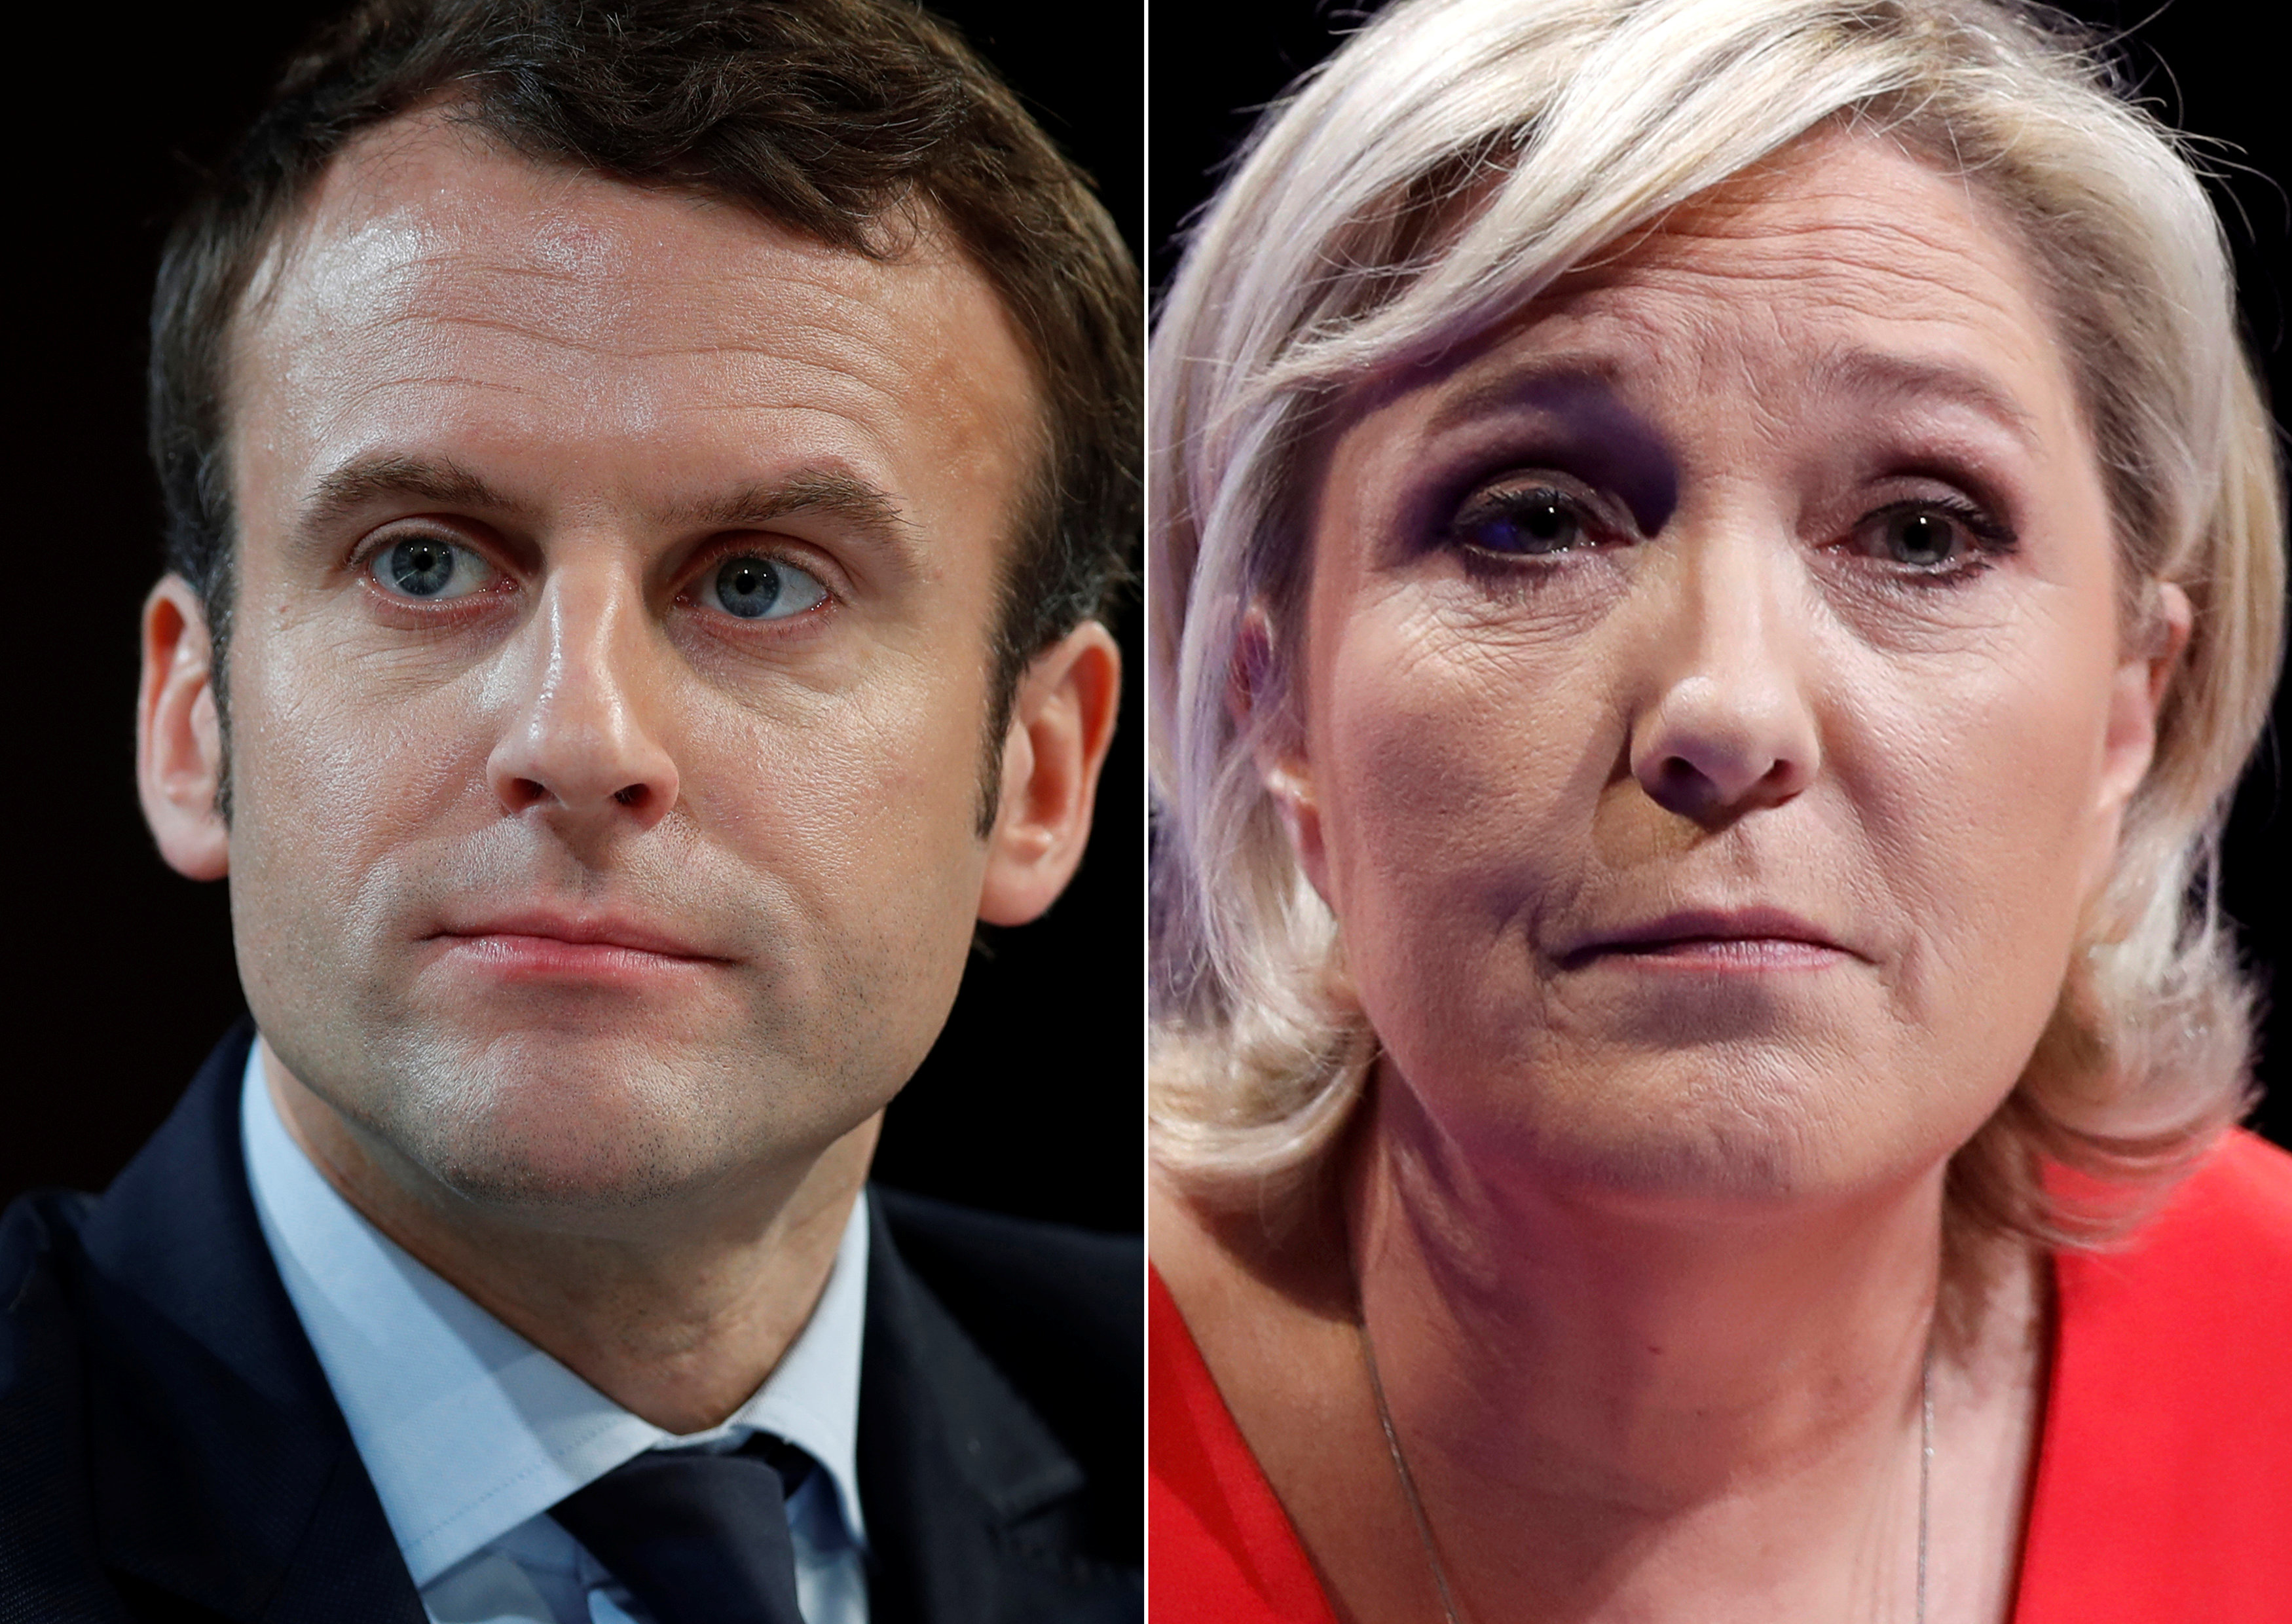 estimations-duel-macron-le-pen-au-2nd-tour-de-la-presidentielle